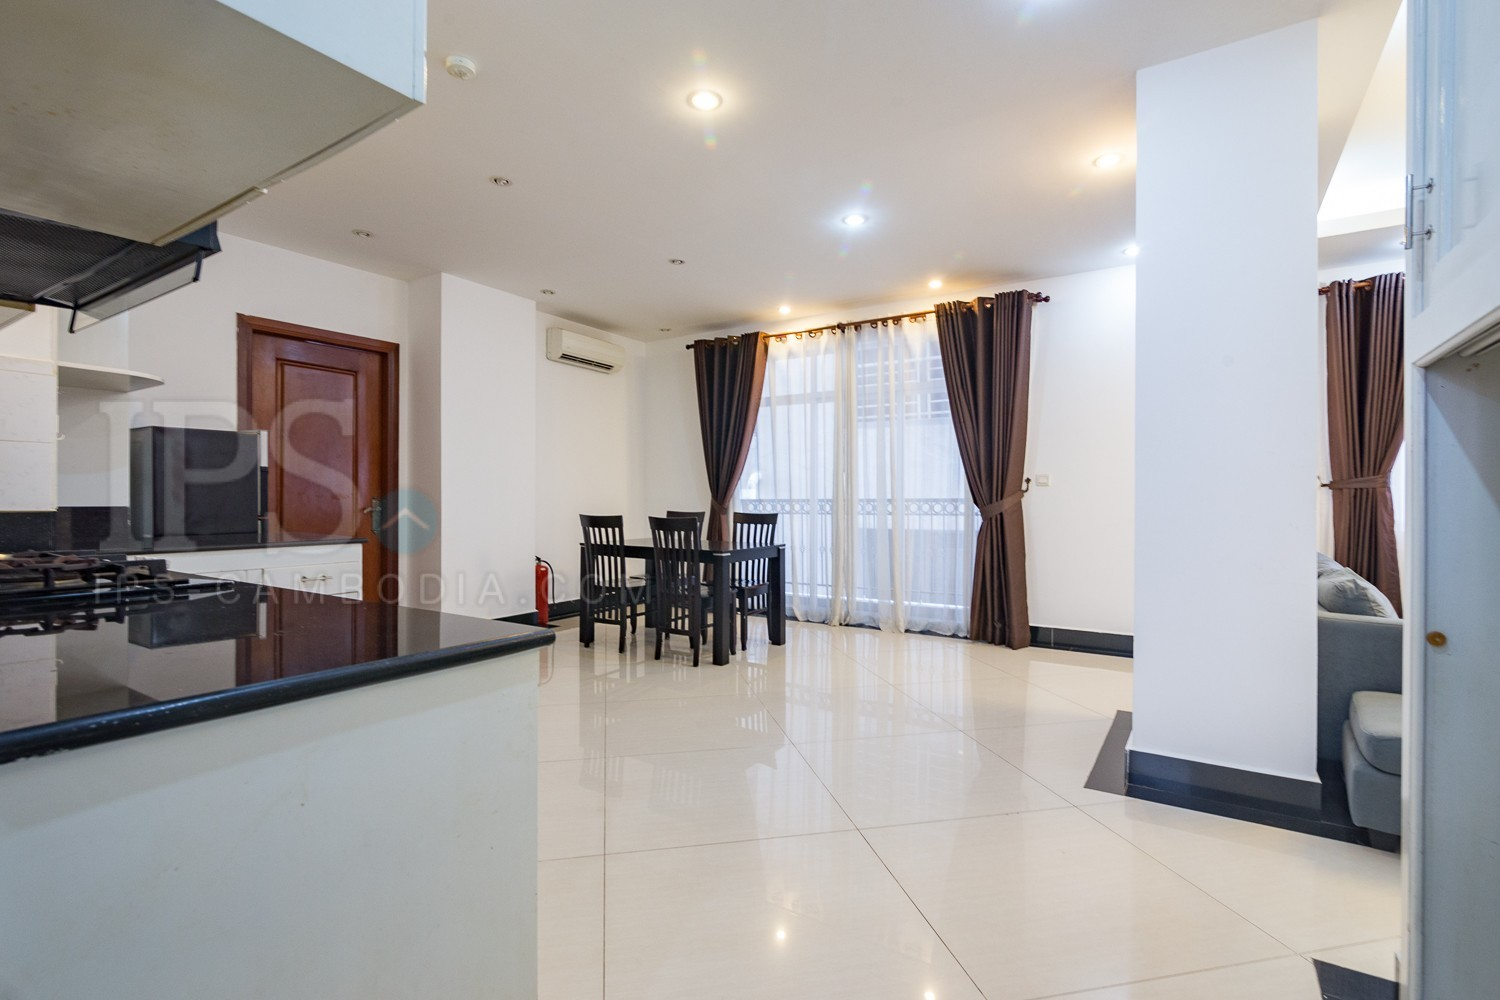 3 Bedroom Apartment for Rent in Phnom Penh - Toul Tom Poung